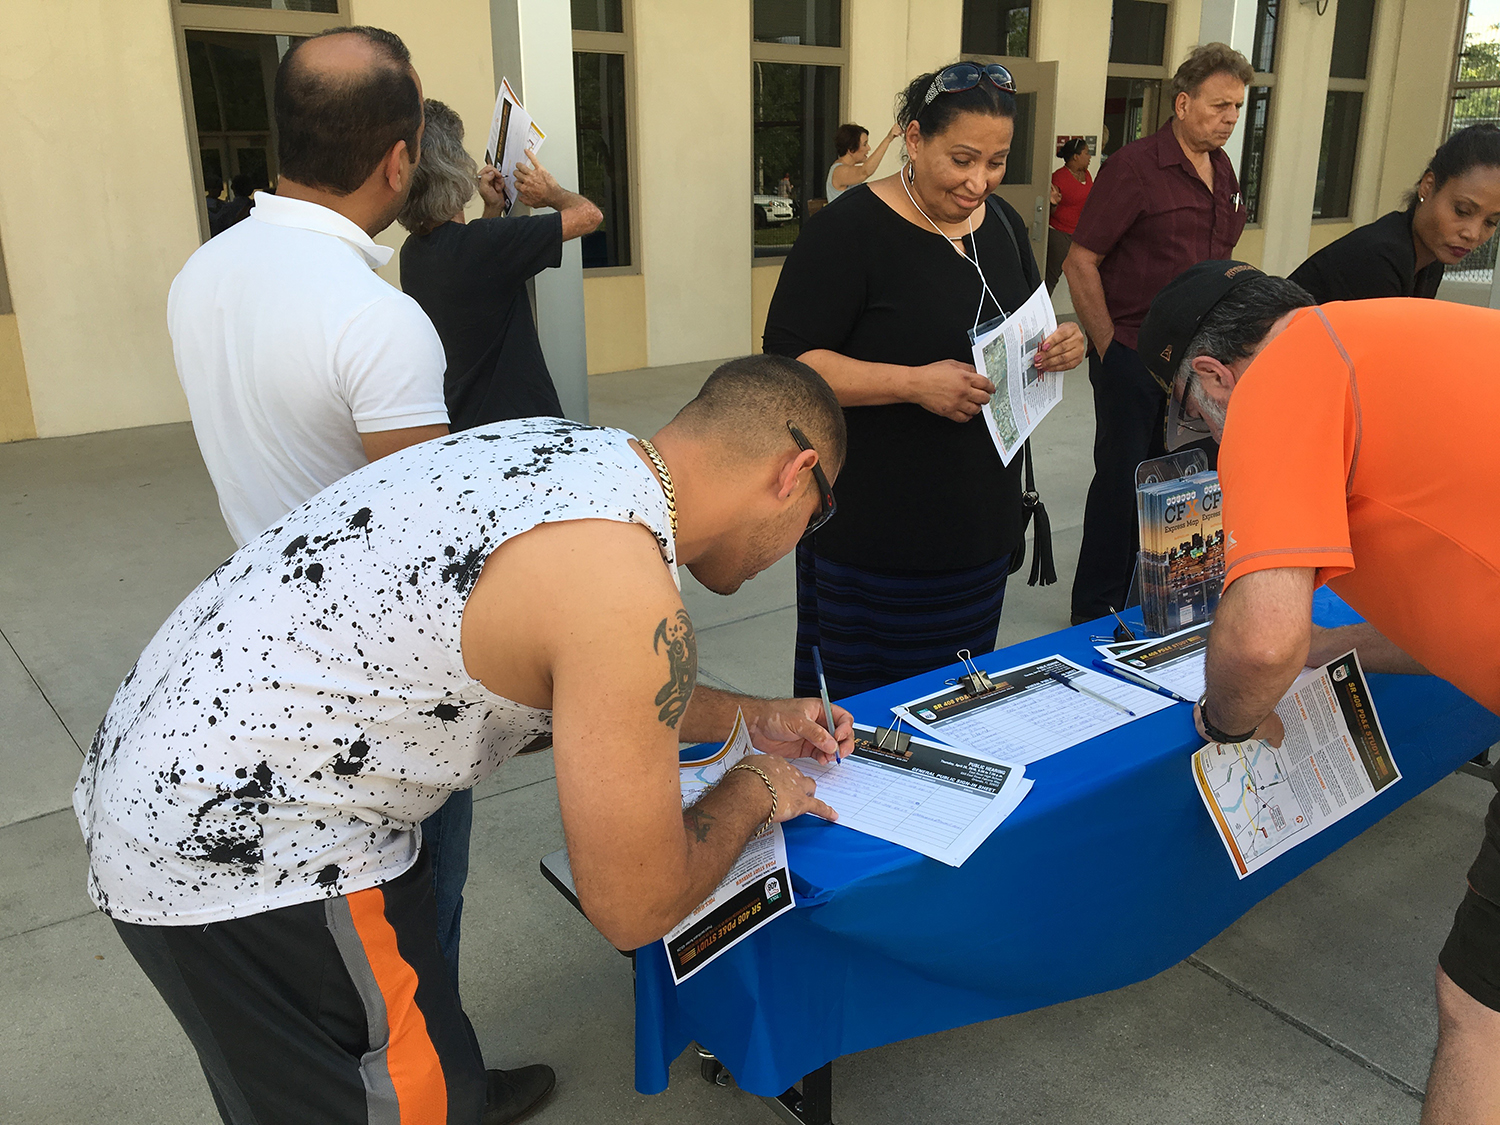 citizens sign up for more information on the State Road 408 Eastern Extension